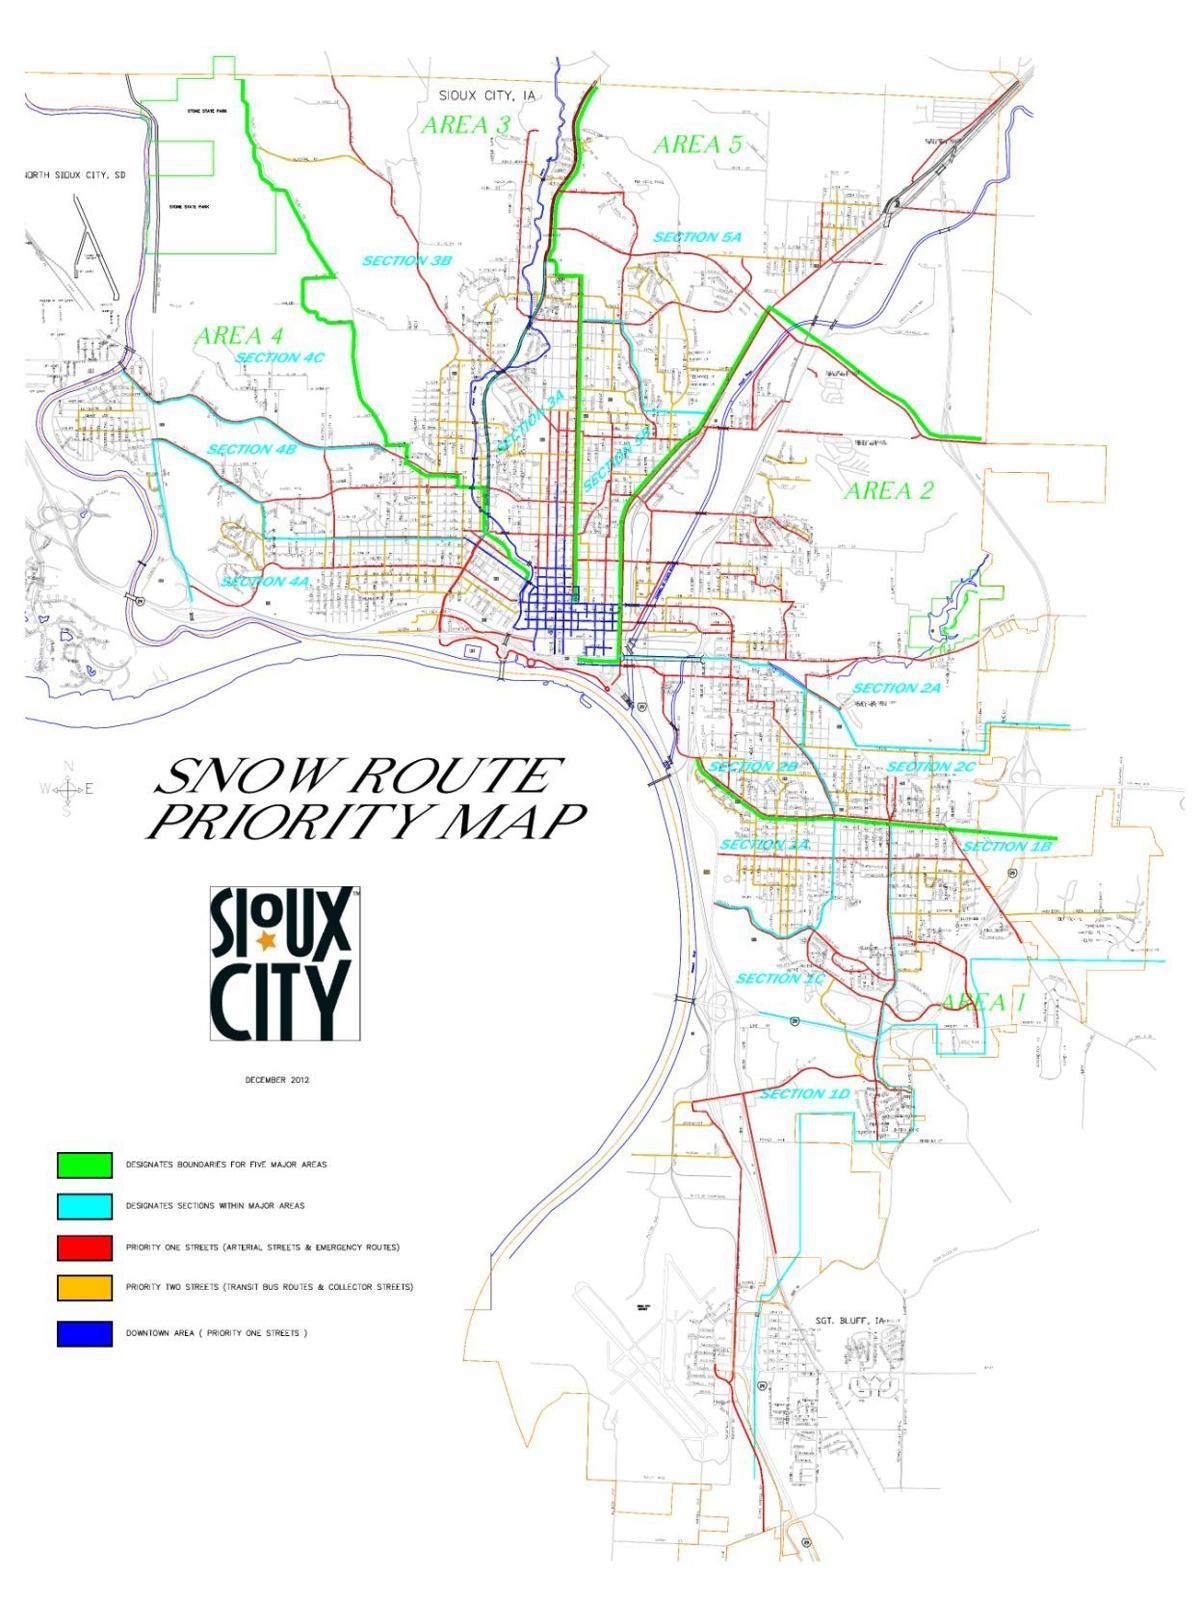 Sioux City snow map | | siouxcityjournal.com on rock valley map, sioux county map, omaha nation map, iowa map, johnson county map, carroll map, lake charles map, missouri valley map, new york university campus map, council bluffs map, beckley map, quad city area map, des moines metropolitan area map, bismarck map, bloomington map, laredo map, muscatine map, big sioux river map, fort wayne map, yankton map,